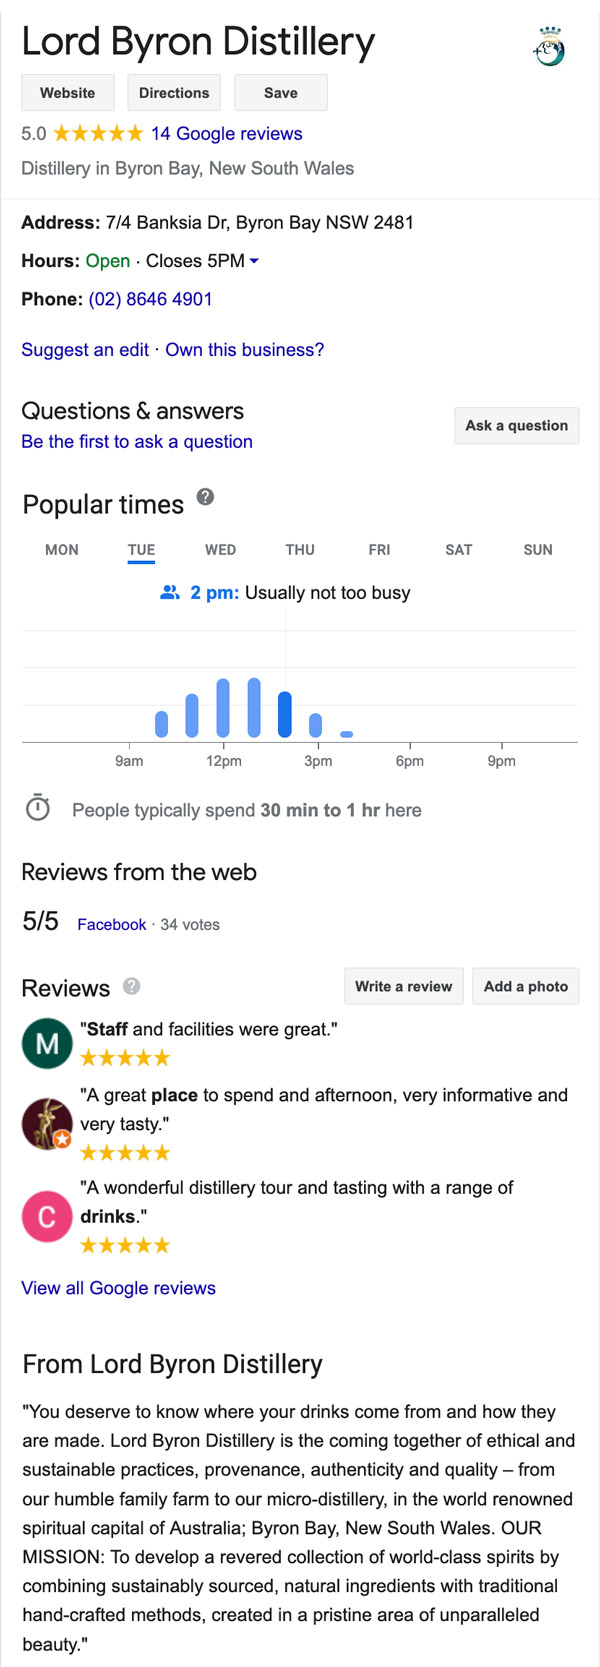 Lord Byron Distillery Google Business account creation and management